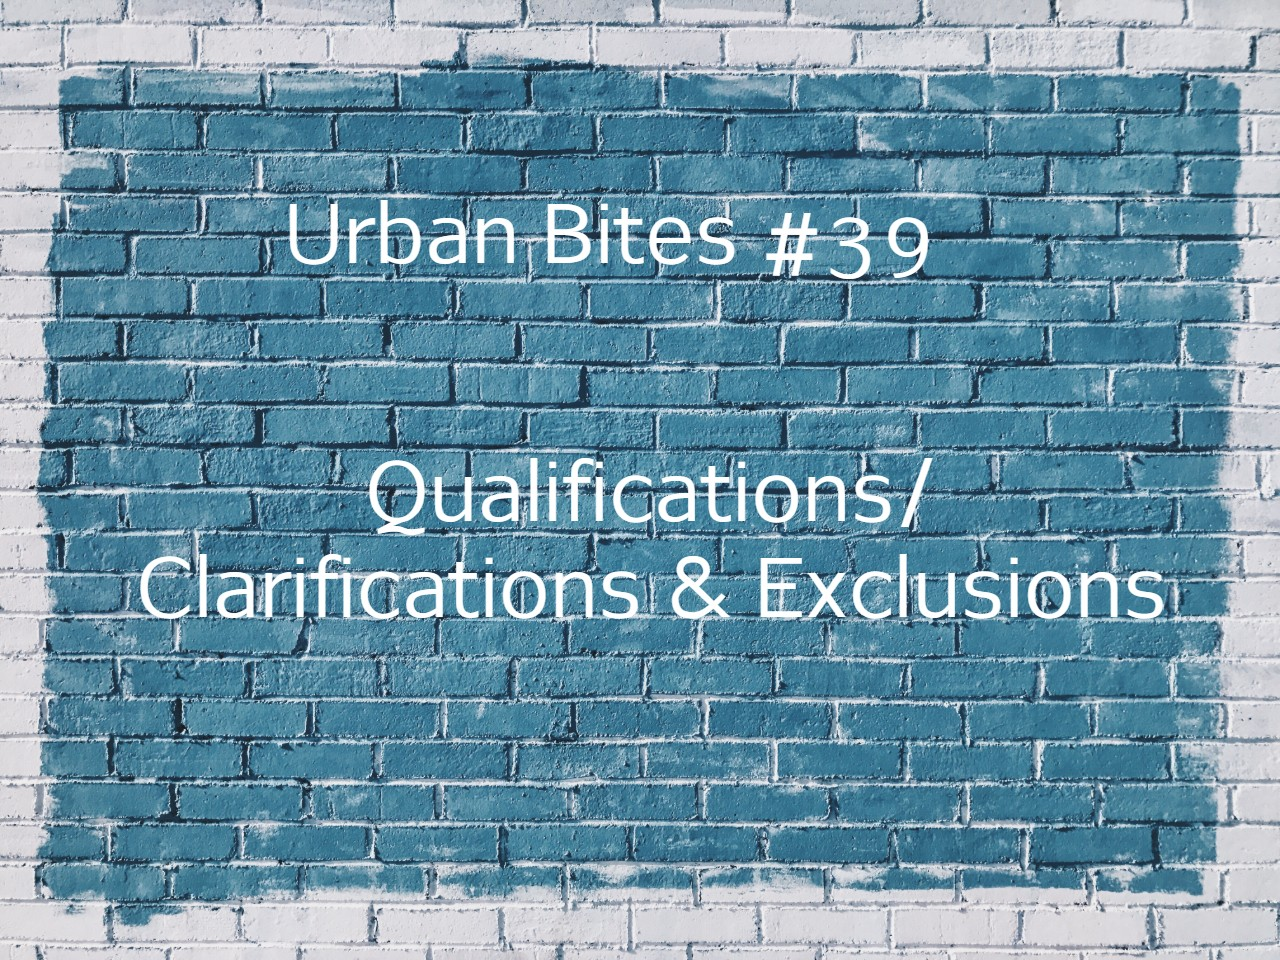 Urban Bites #39 - Qualifications / Clarifications & Exclusions